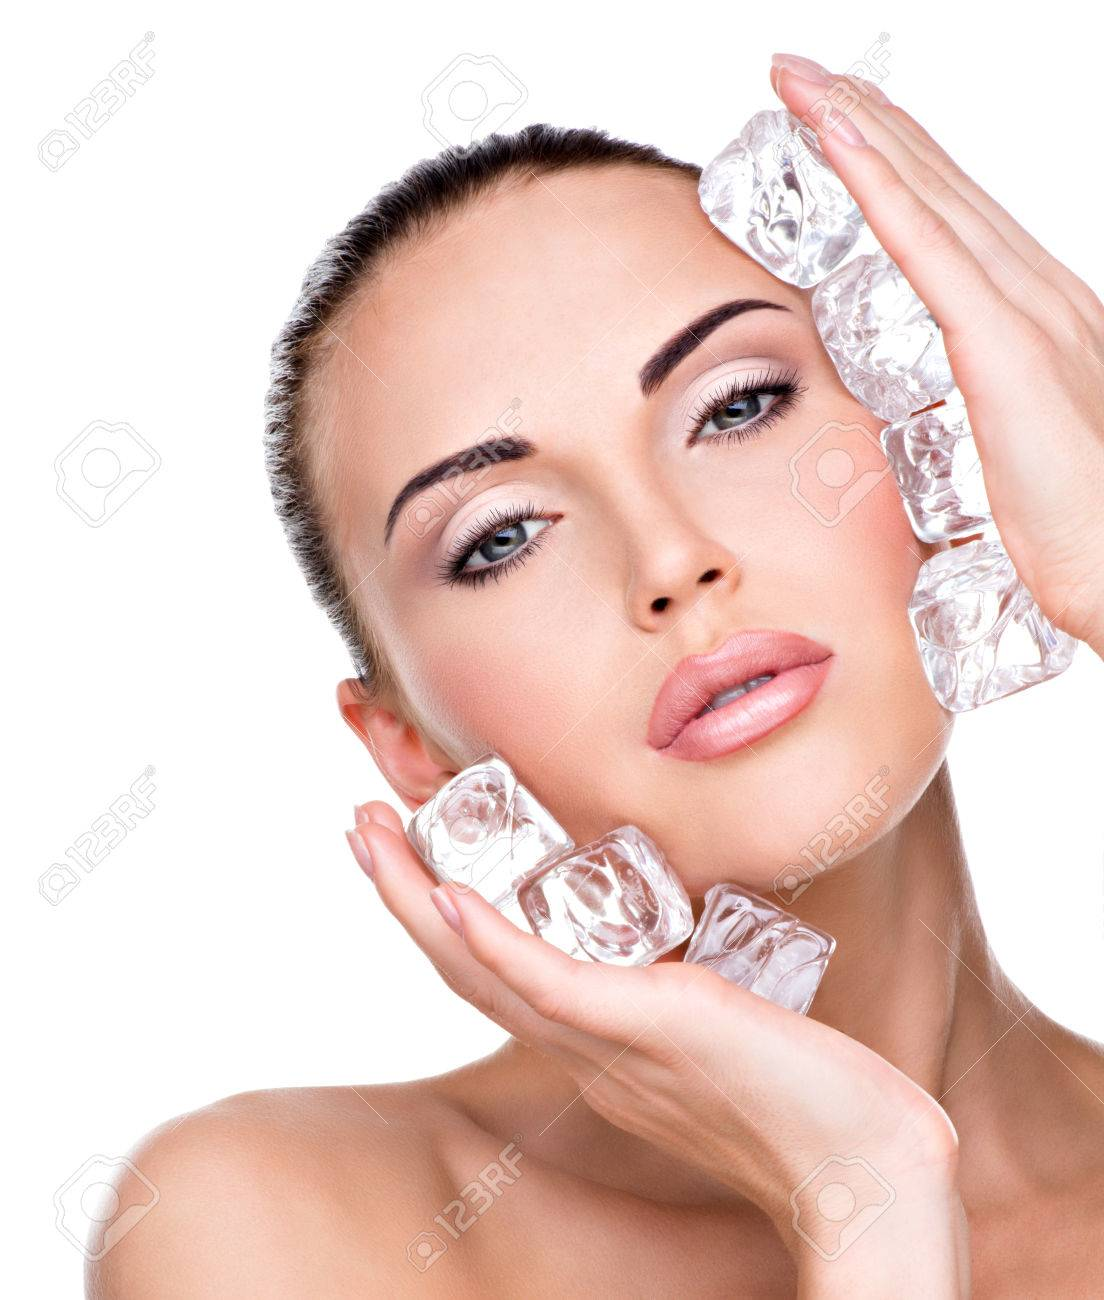 Beautiful young woman applies the ice to face. Skin care concept. - 53559274